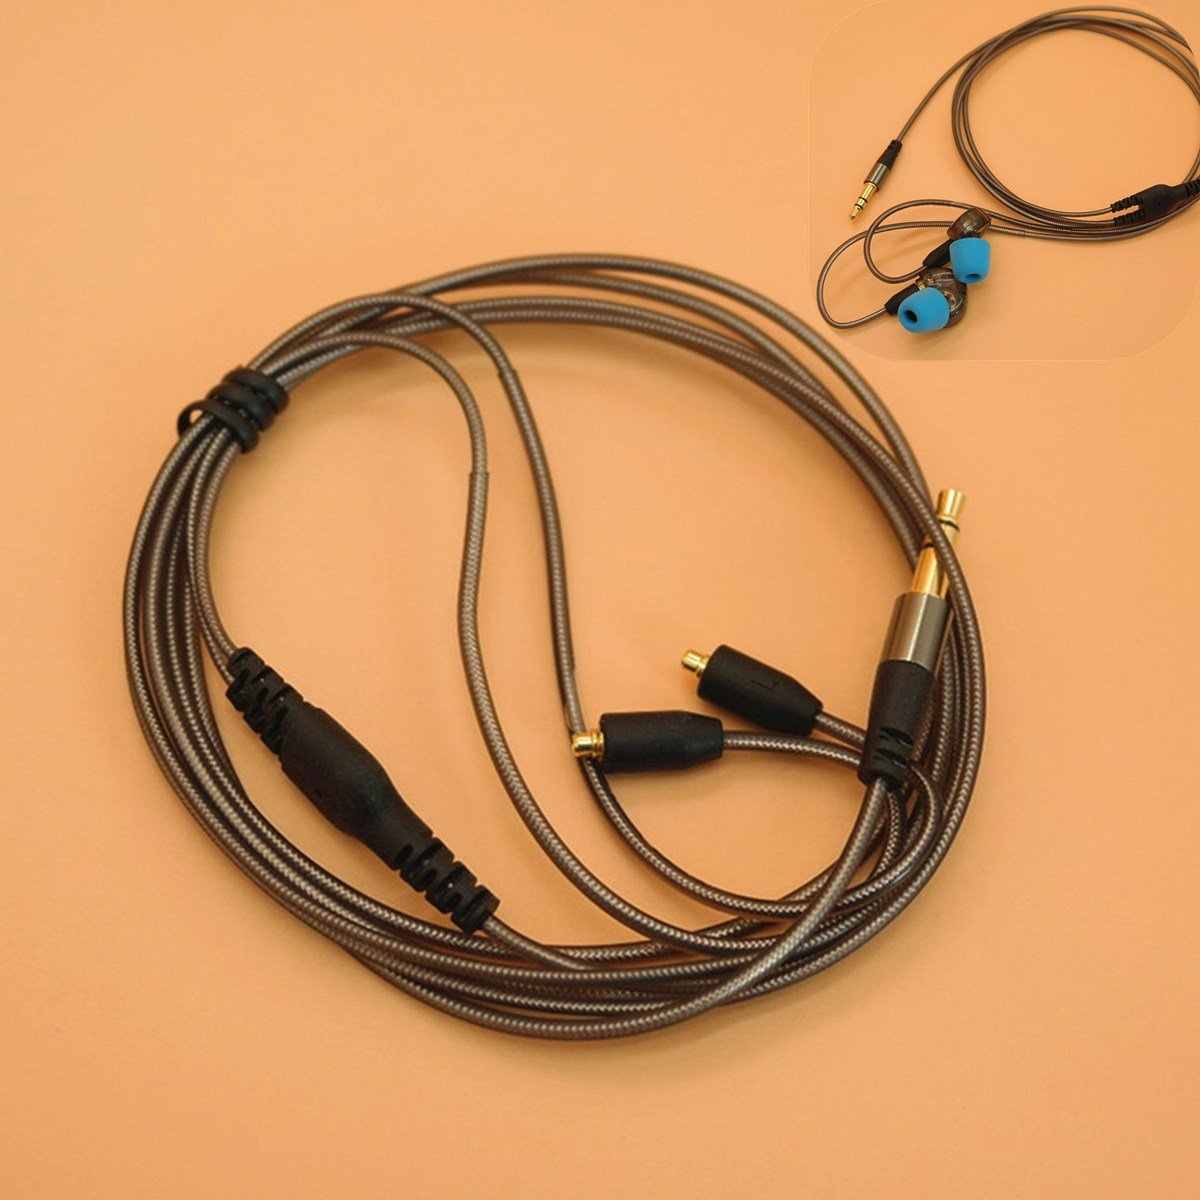 3.5mm Earphone Audio Cable Replacement for Shure Headphone SE215 315 425 535 846 BephaMart BM00001